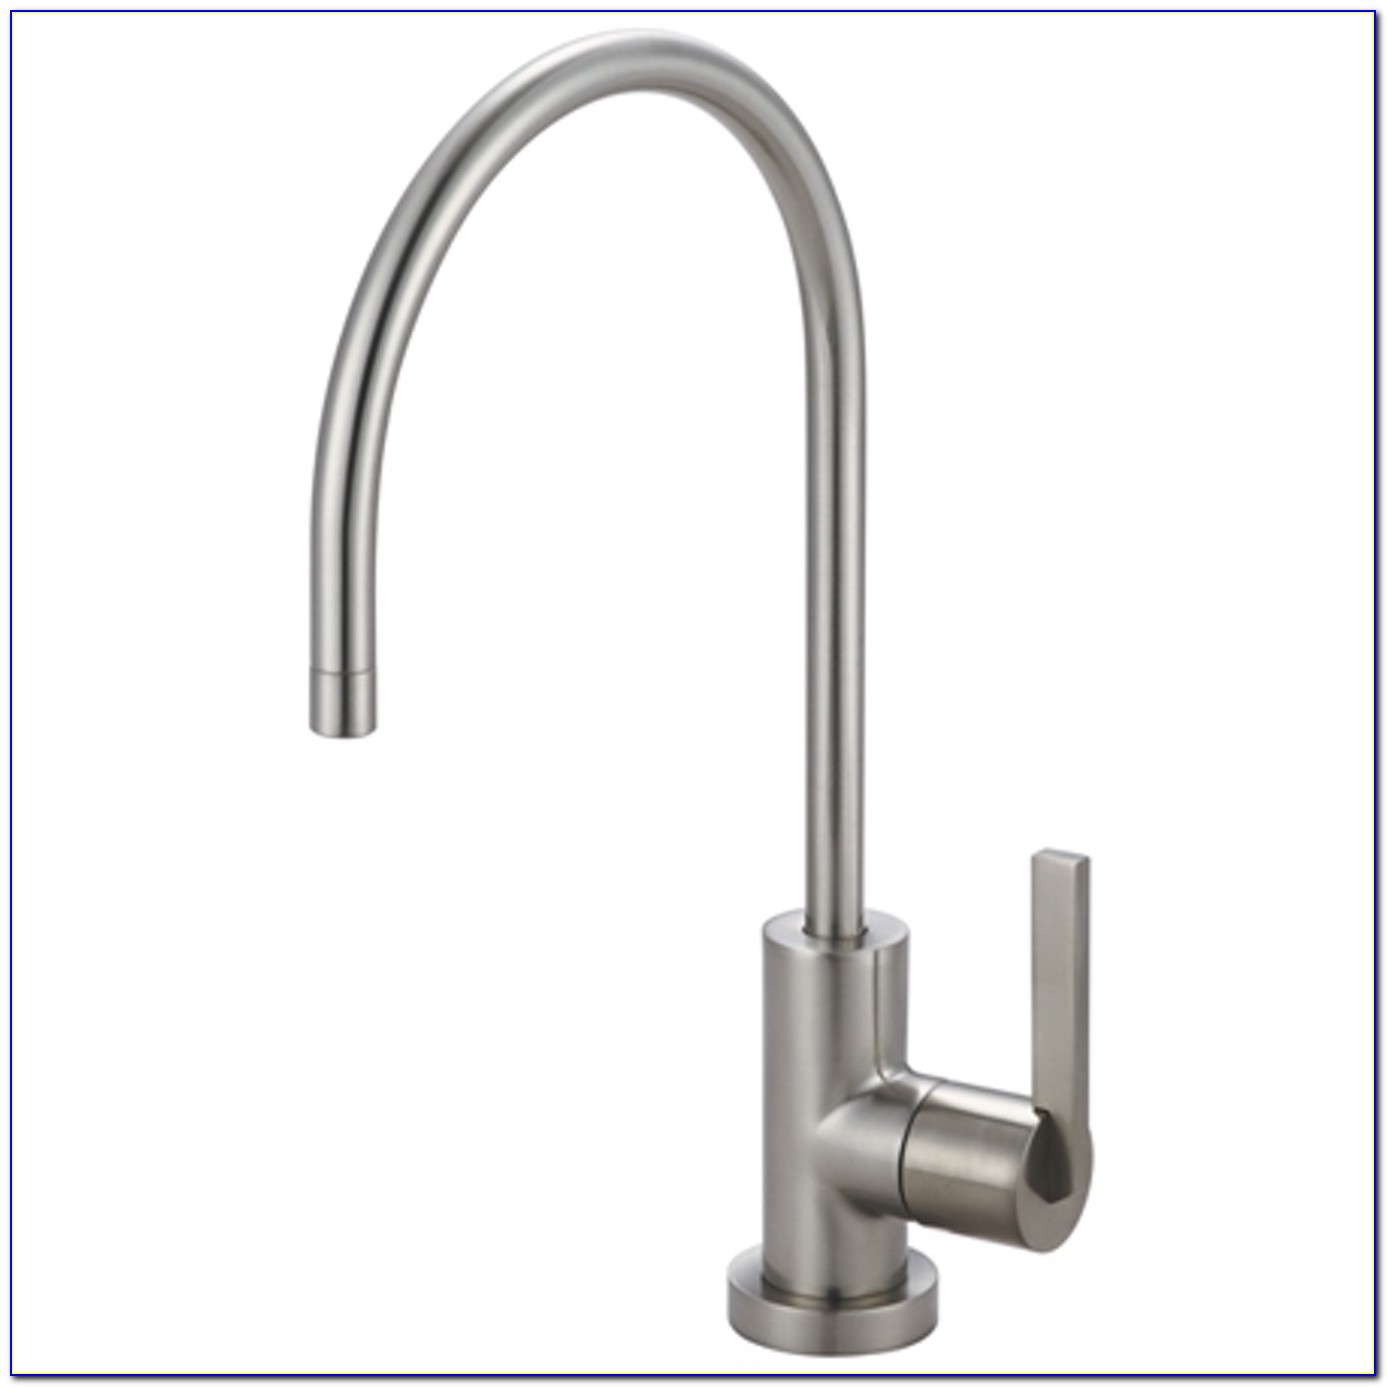 Filtered Water Faucet Kitchen Sink